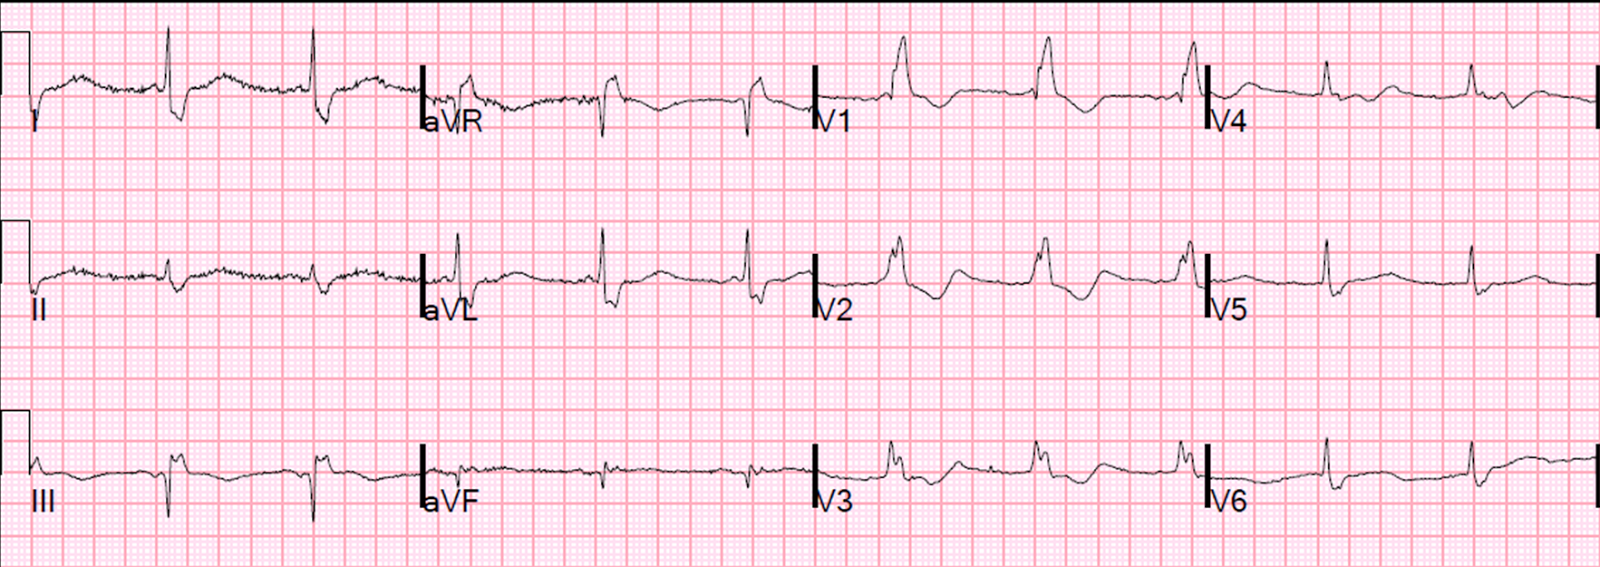 Dr smiths ecg blog pseudostemi and true st elevation in right pseudostemi and true st elevation in right bundle branch block rbbb dont miss case 4 at the bottom ccuart Gallery